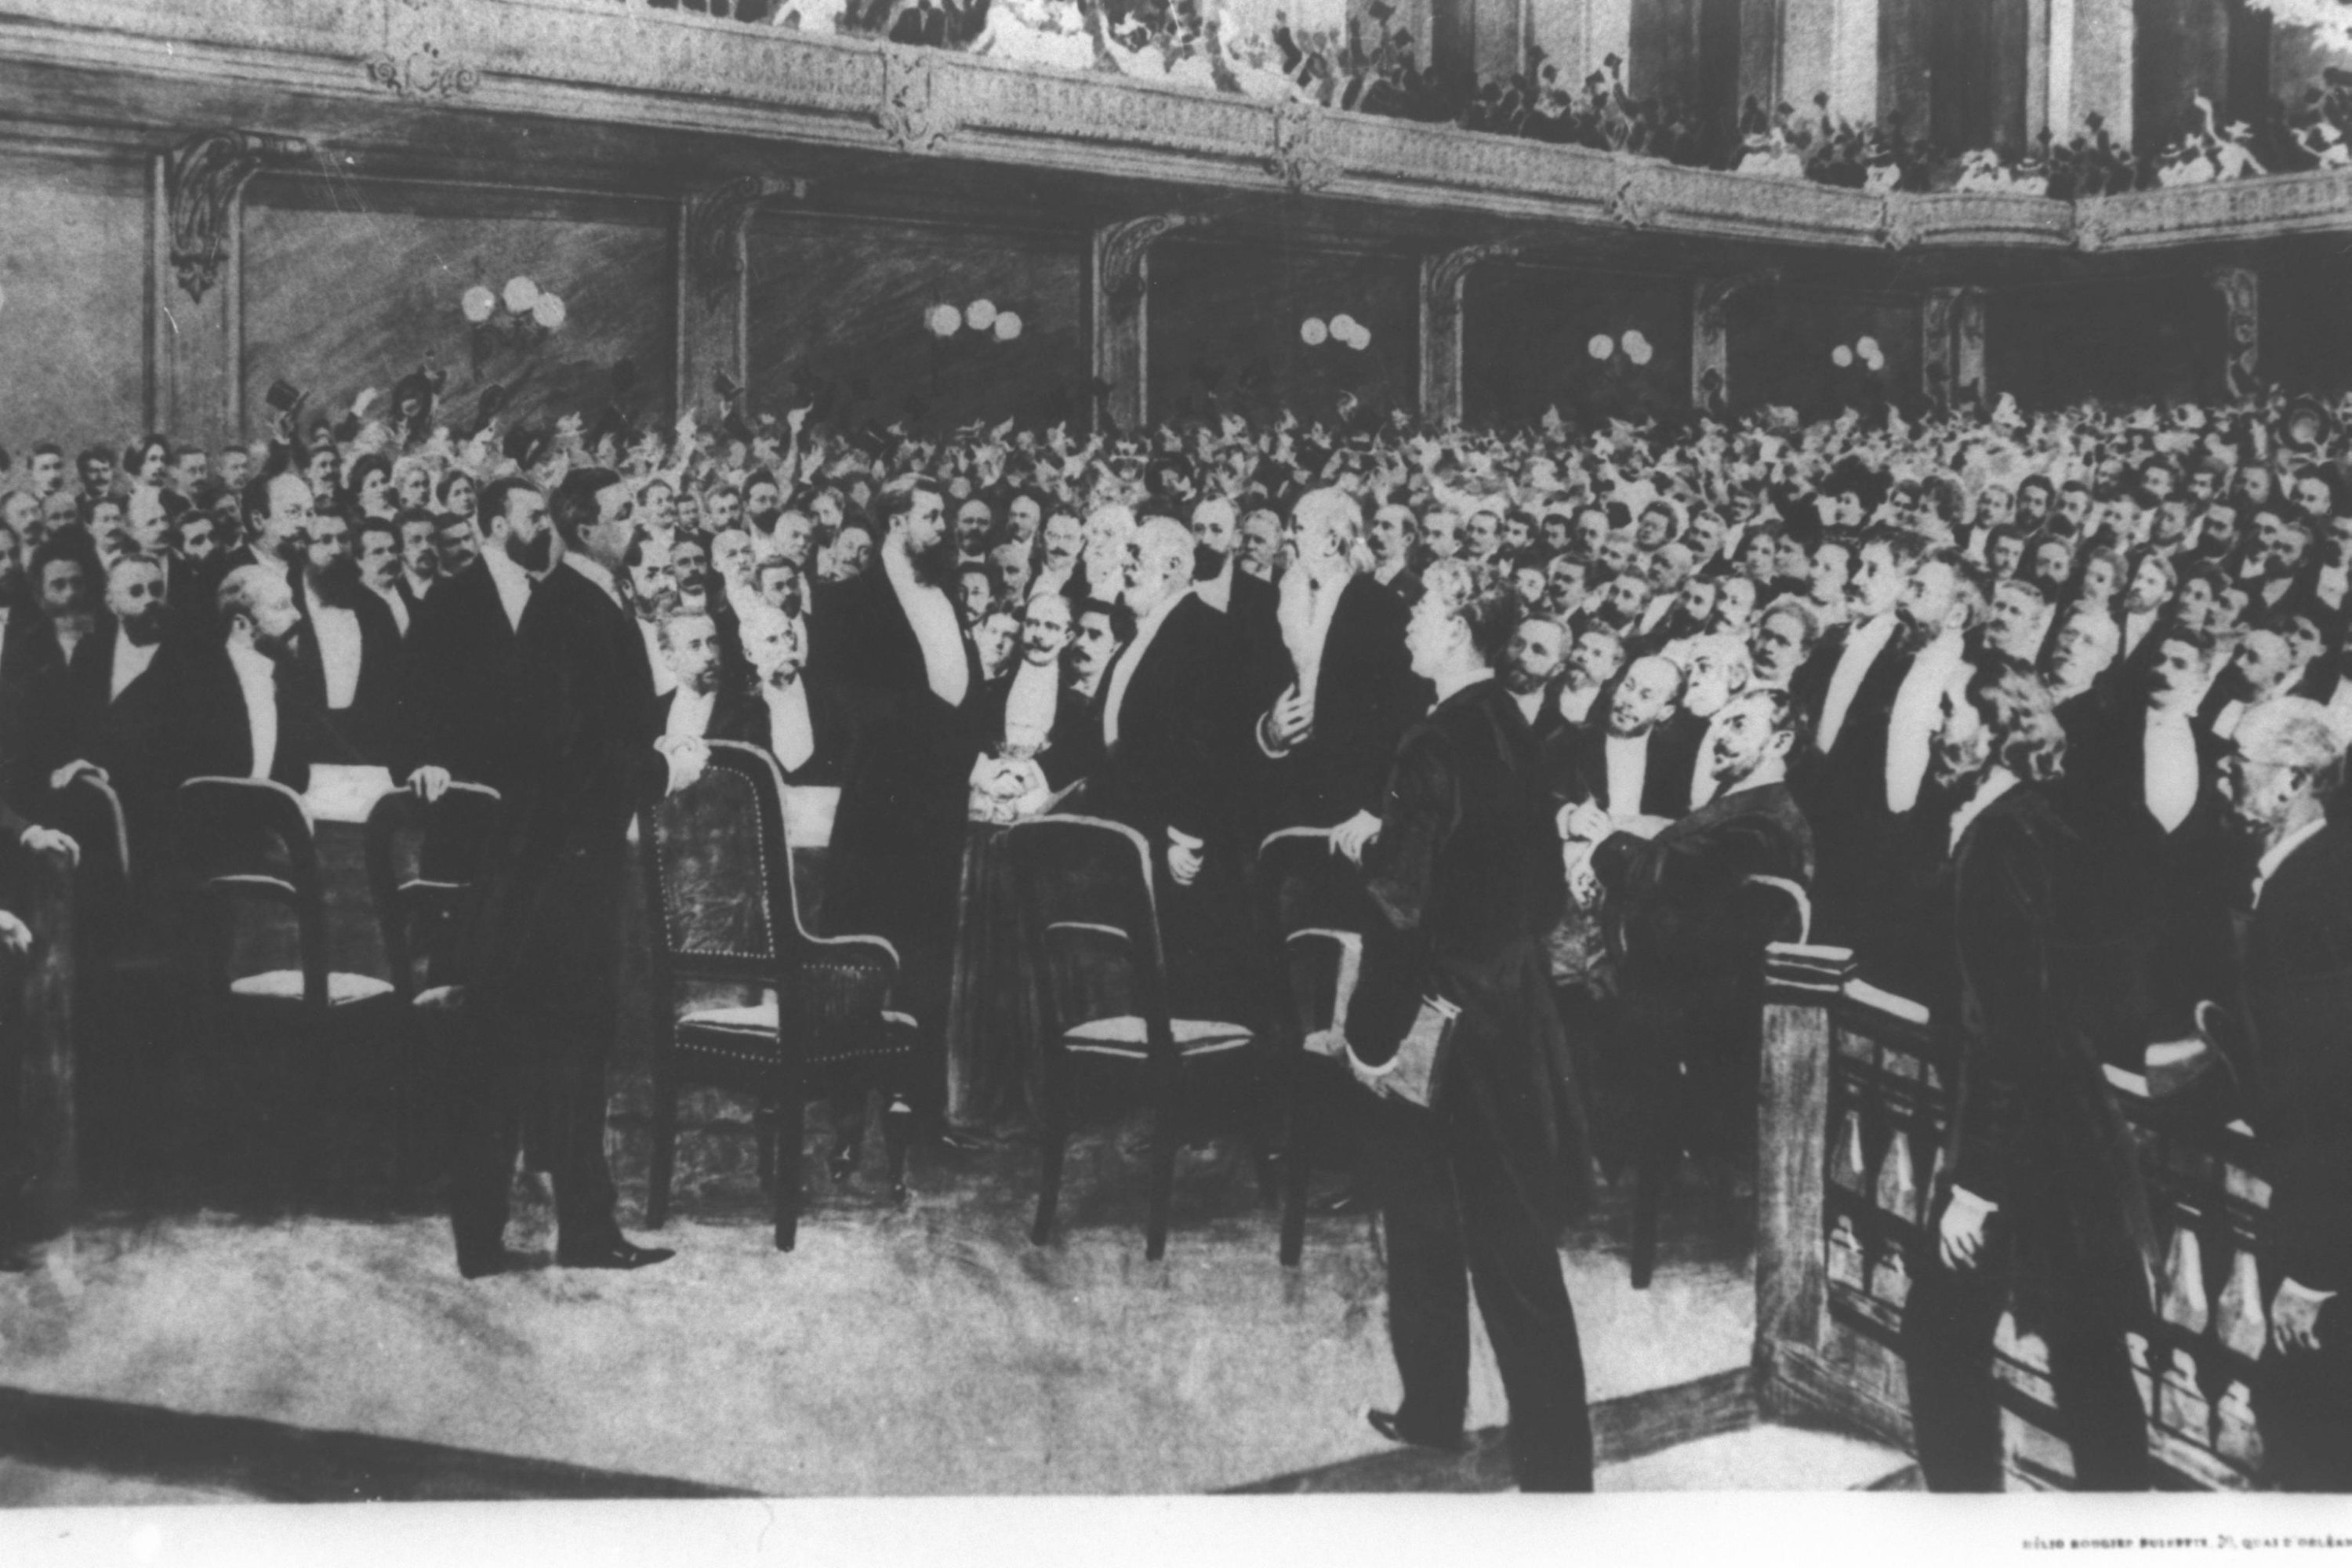 Theodor Herzl at the First Zionist Congress in Basel, Switzerland, Aug. 25, 1897. (Wikimedia Photo)